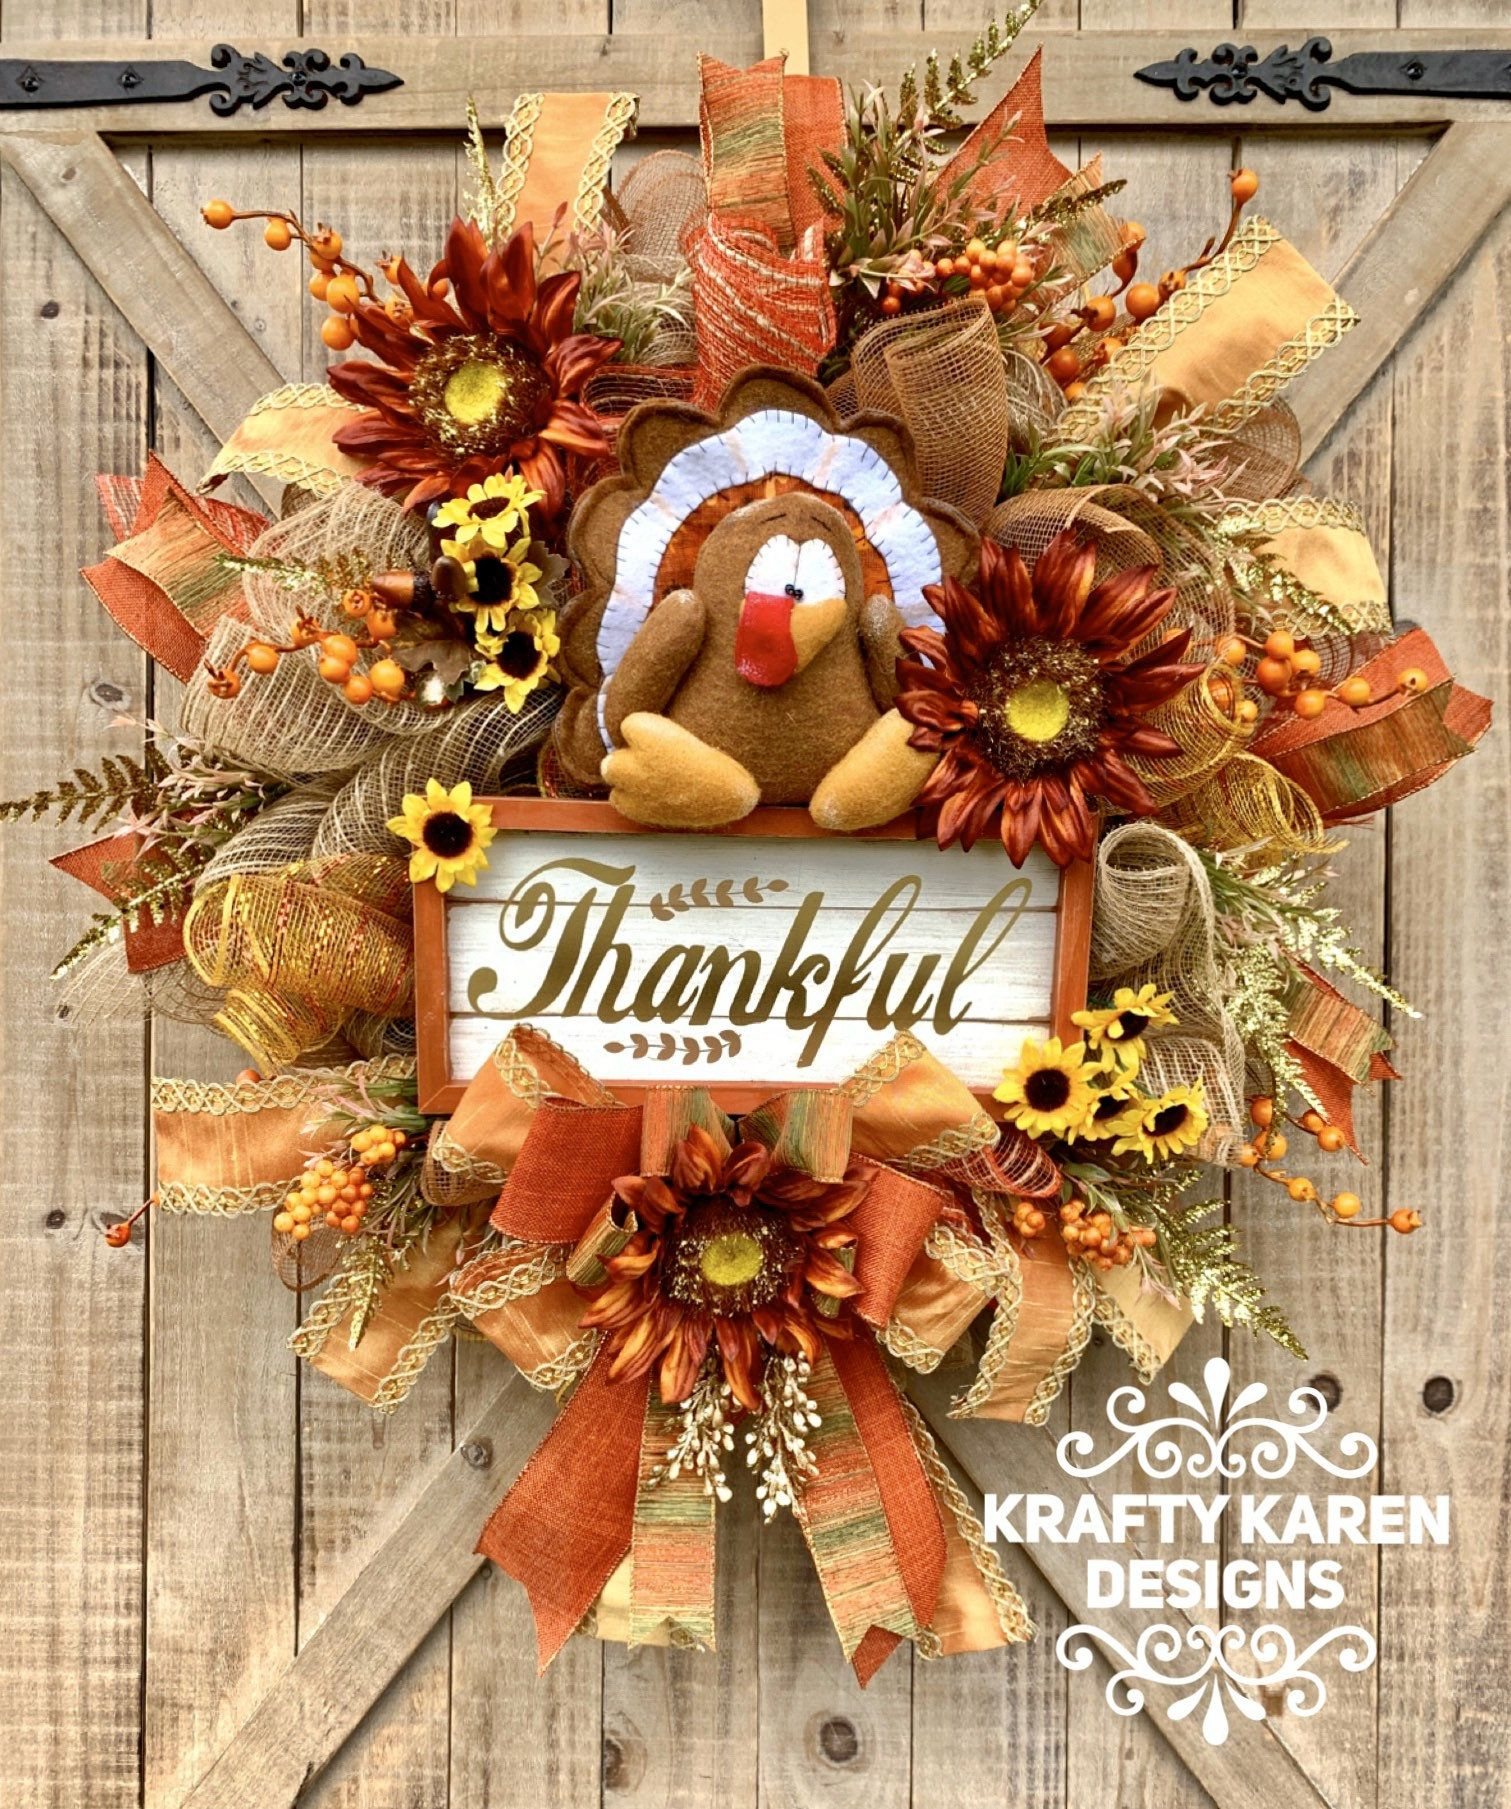 XL Thanksgiving Wreath, Fall Wreath, Fall Home Decor, Sunflower Wreath, Turkey Wreath, Autumn Wreath, Front Door Wreath, Thankful Wreath